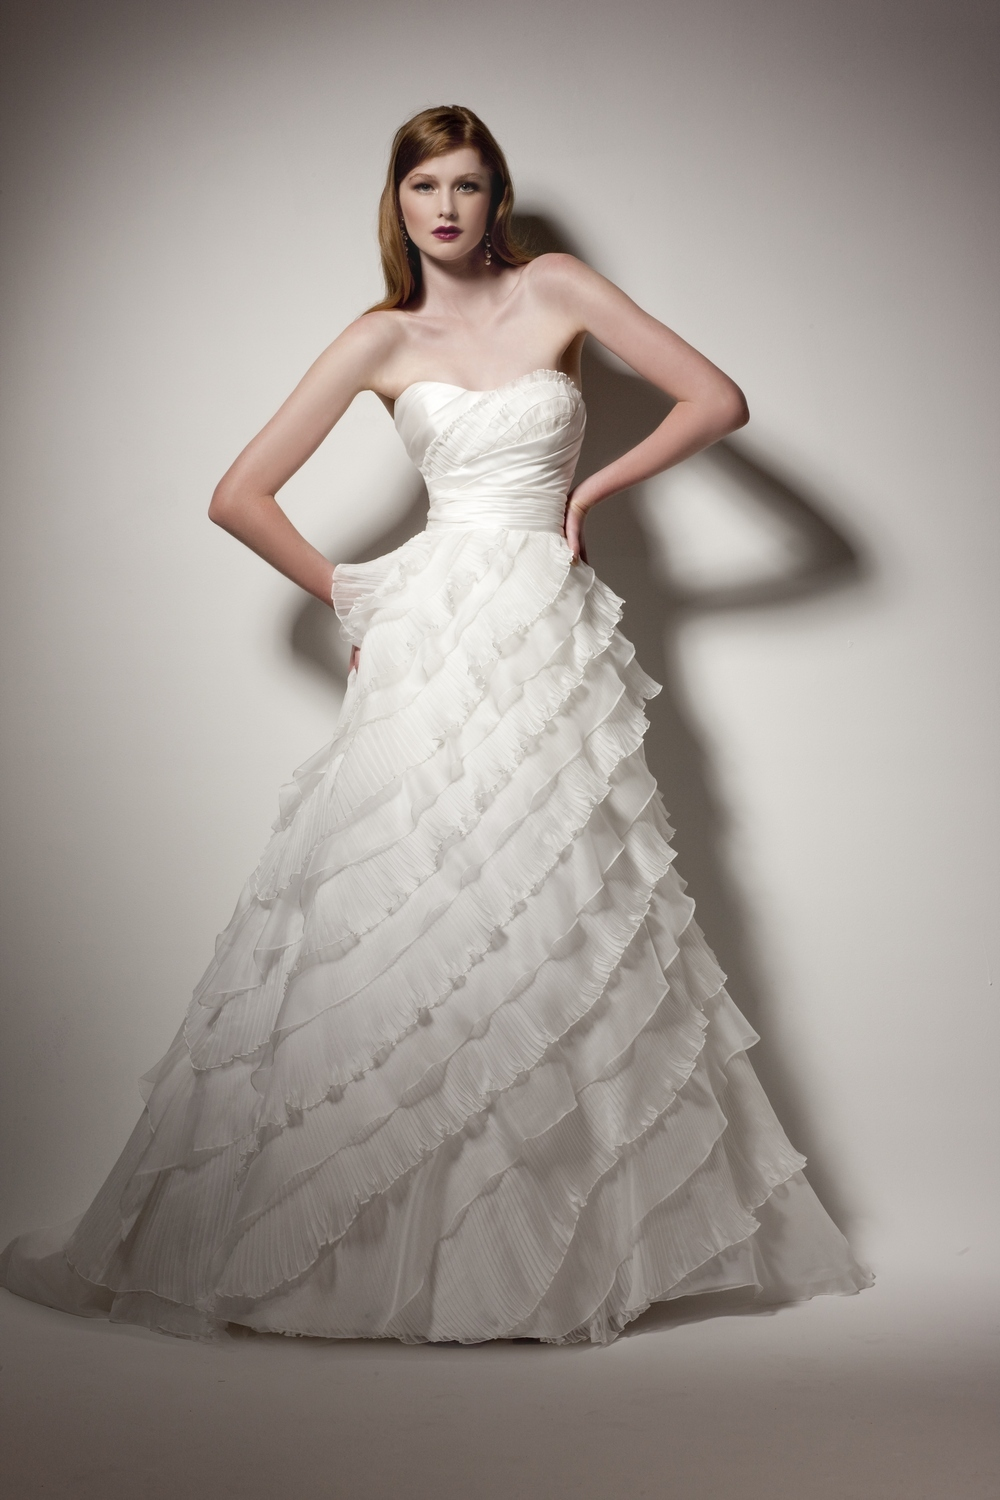 This white strapless full a-line wedding dress is actually convertible!